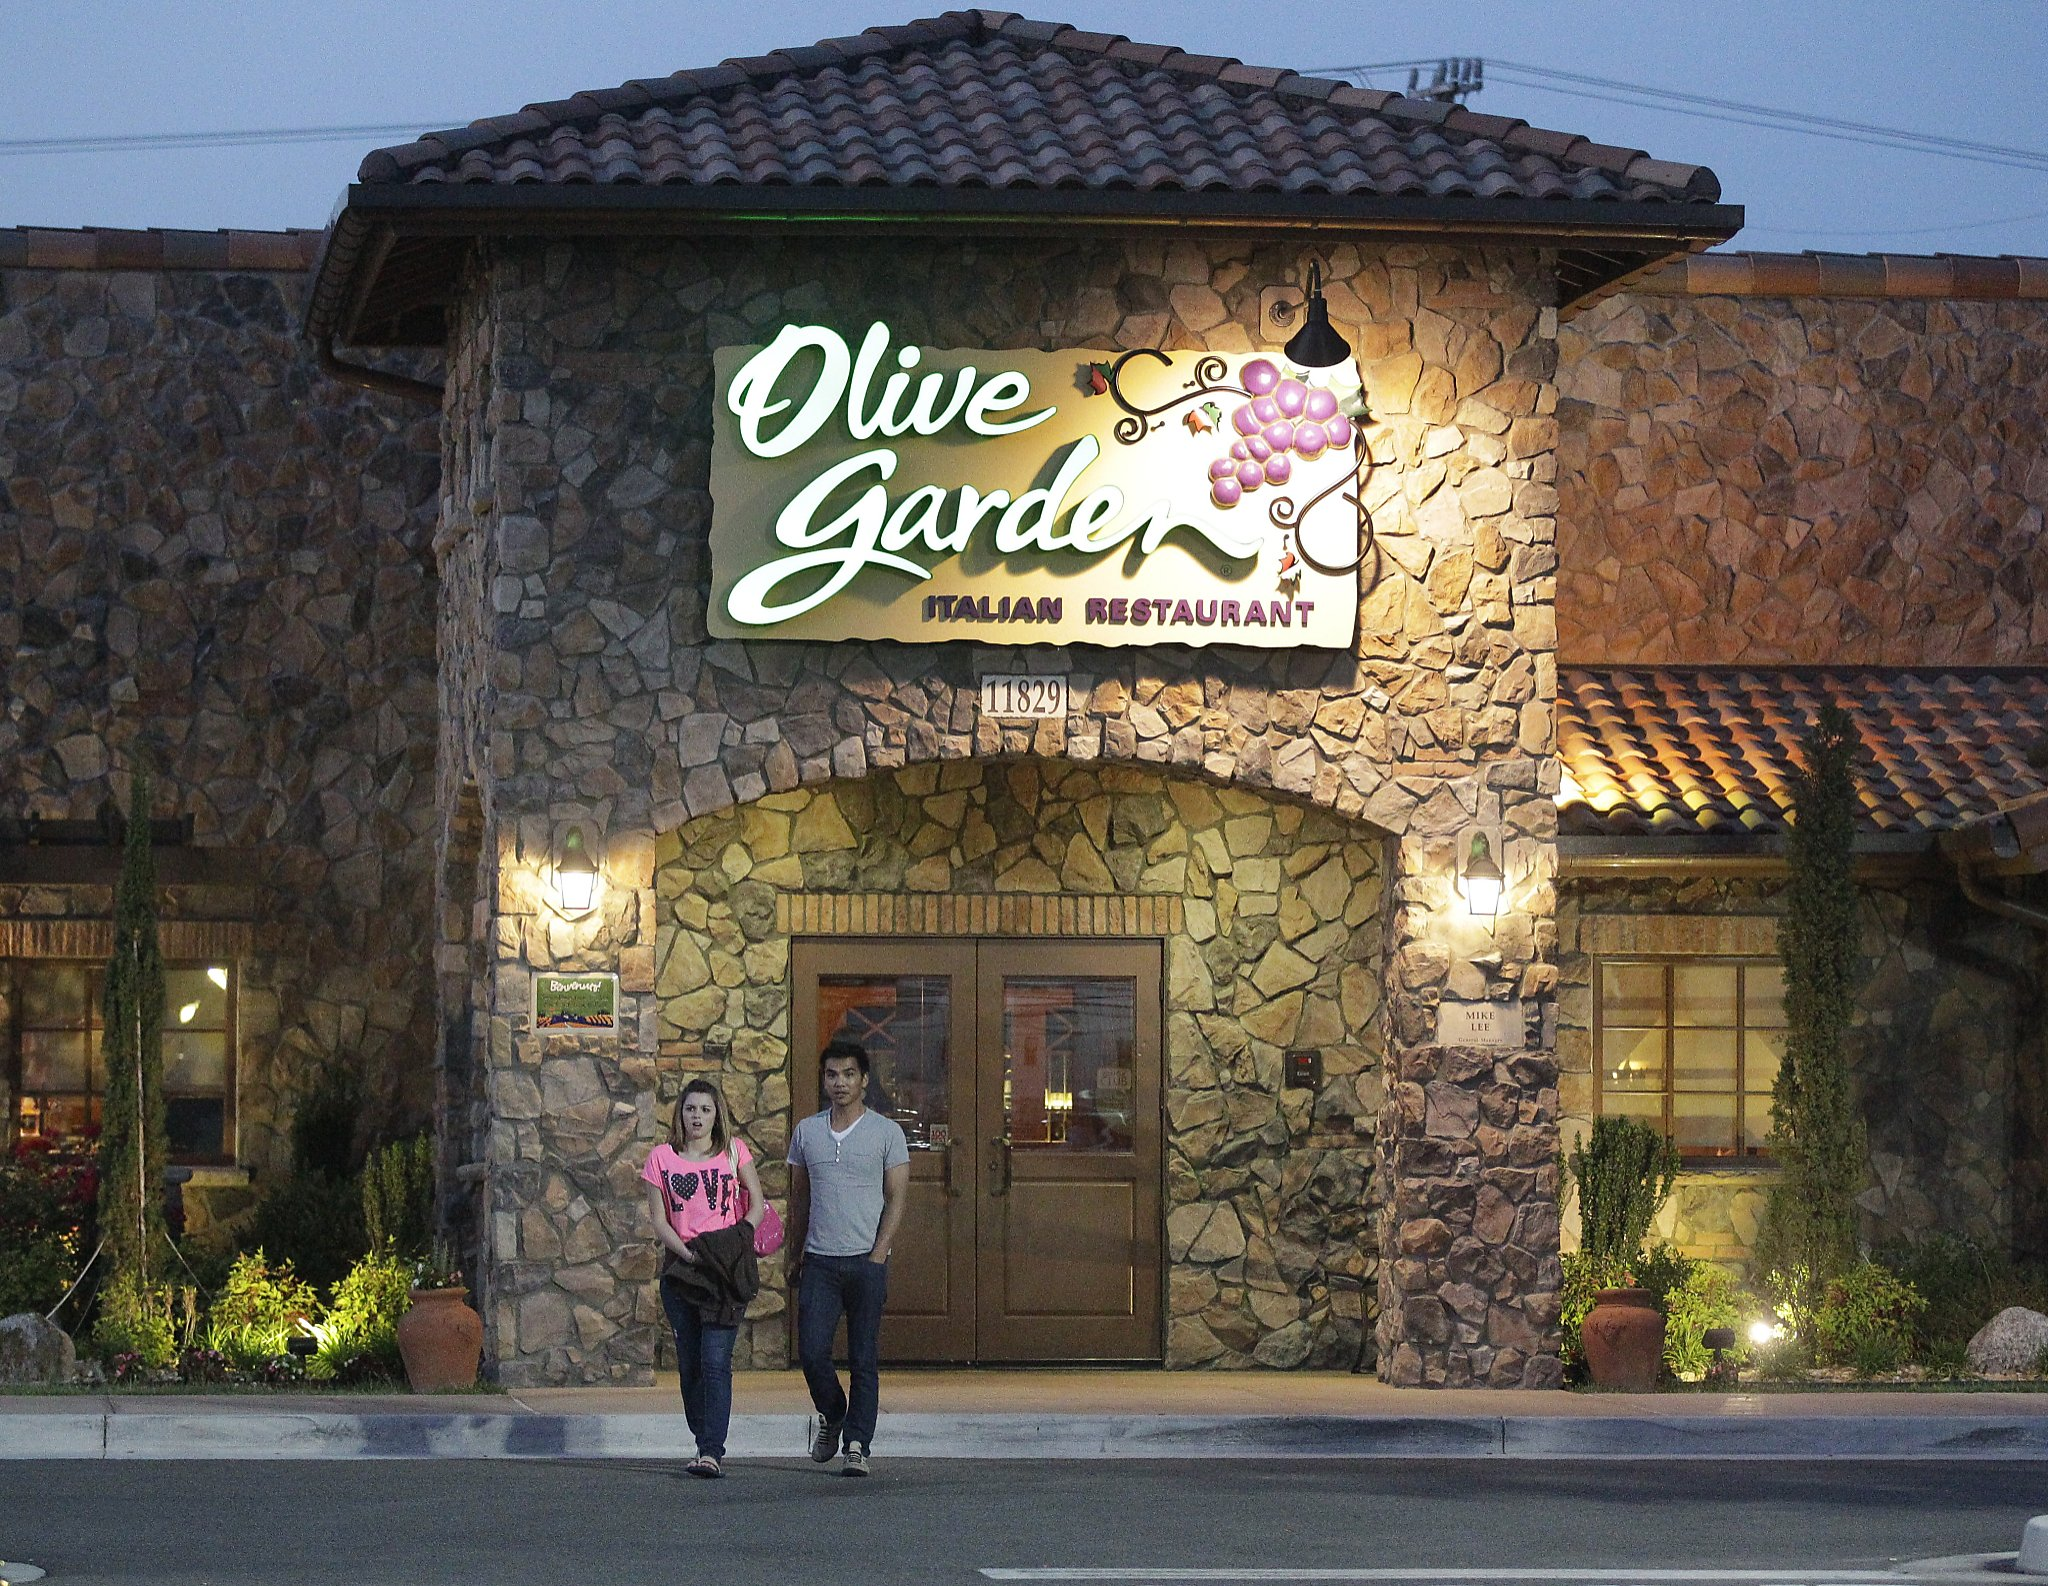 Olive Garden pushes smaller portions, online ordering - SFGate